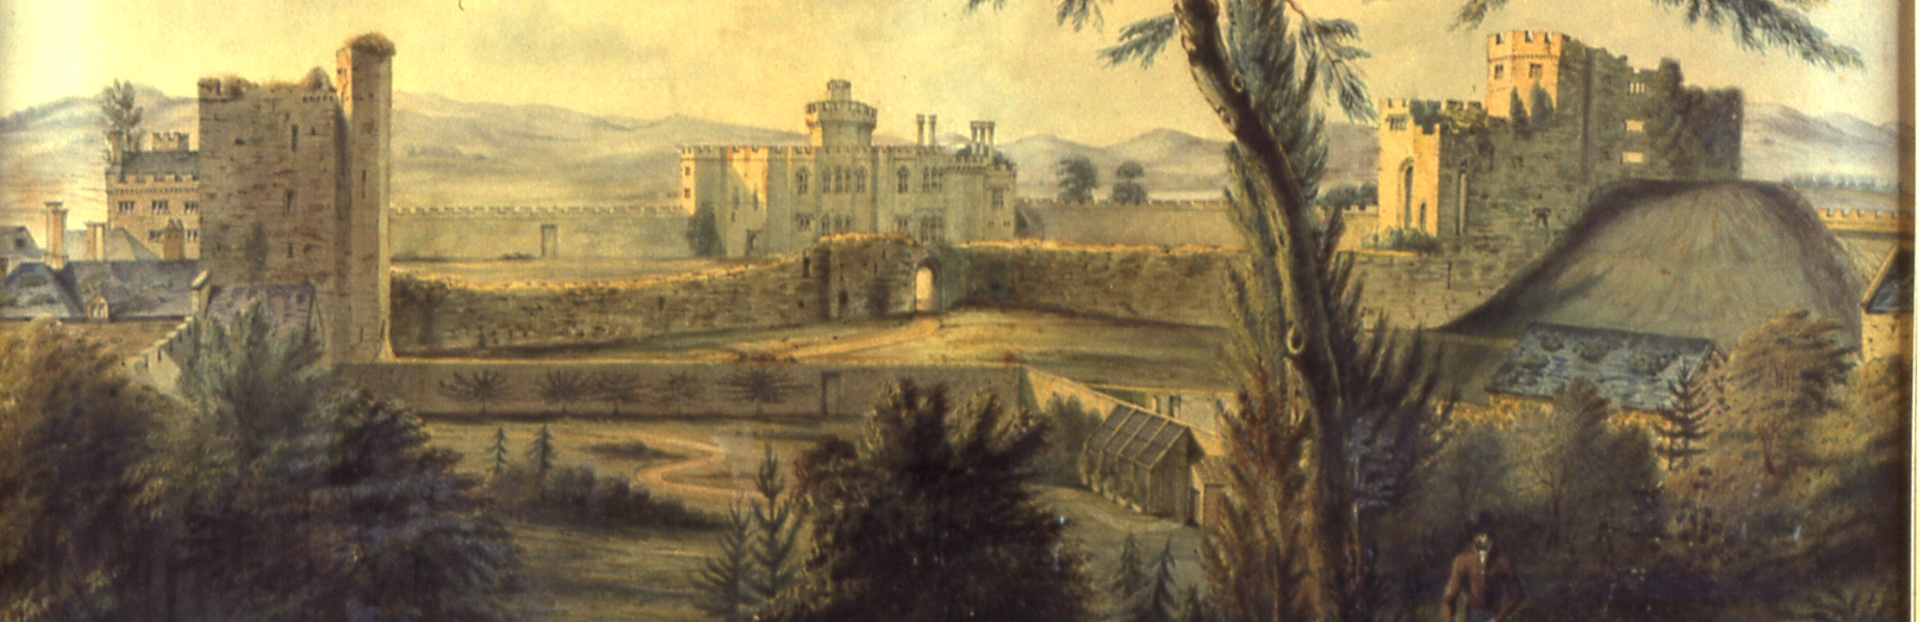 Cardiff castle 1760 cropped